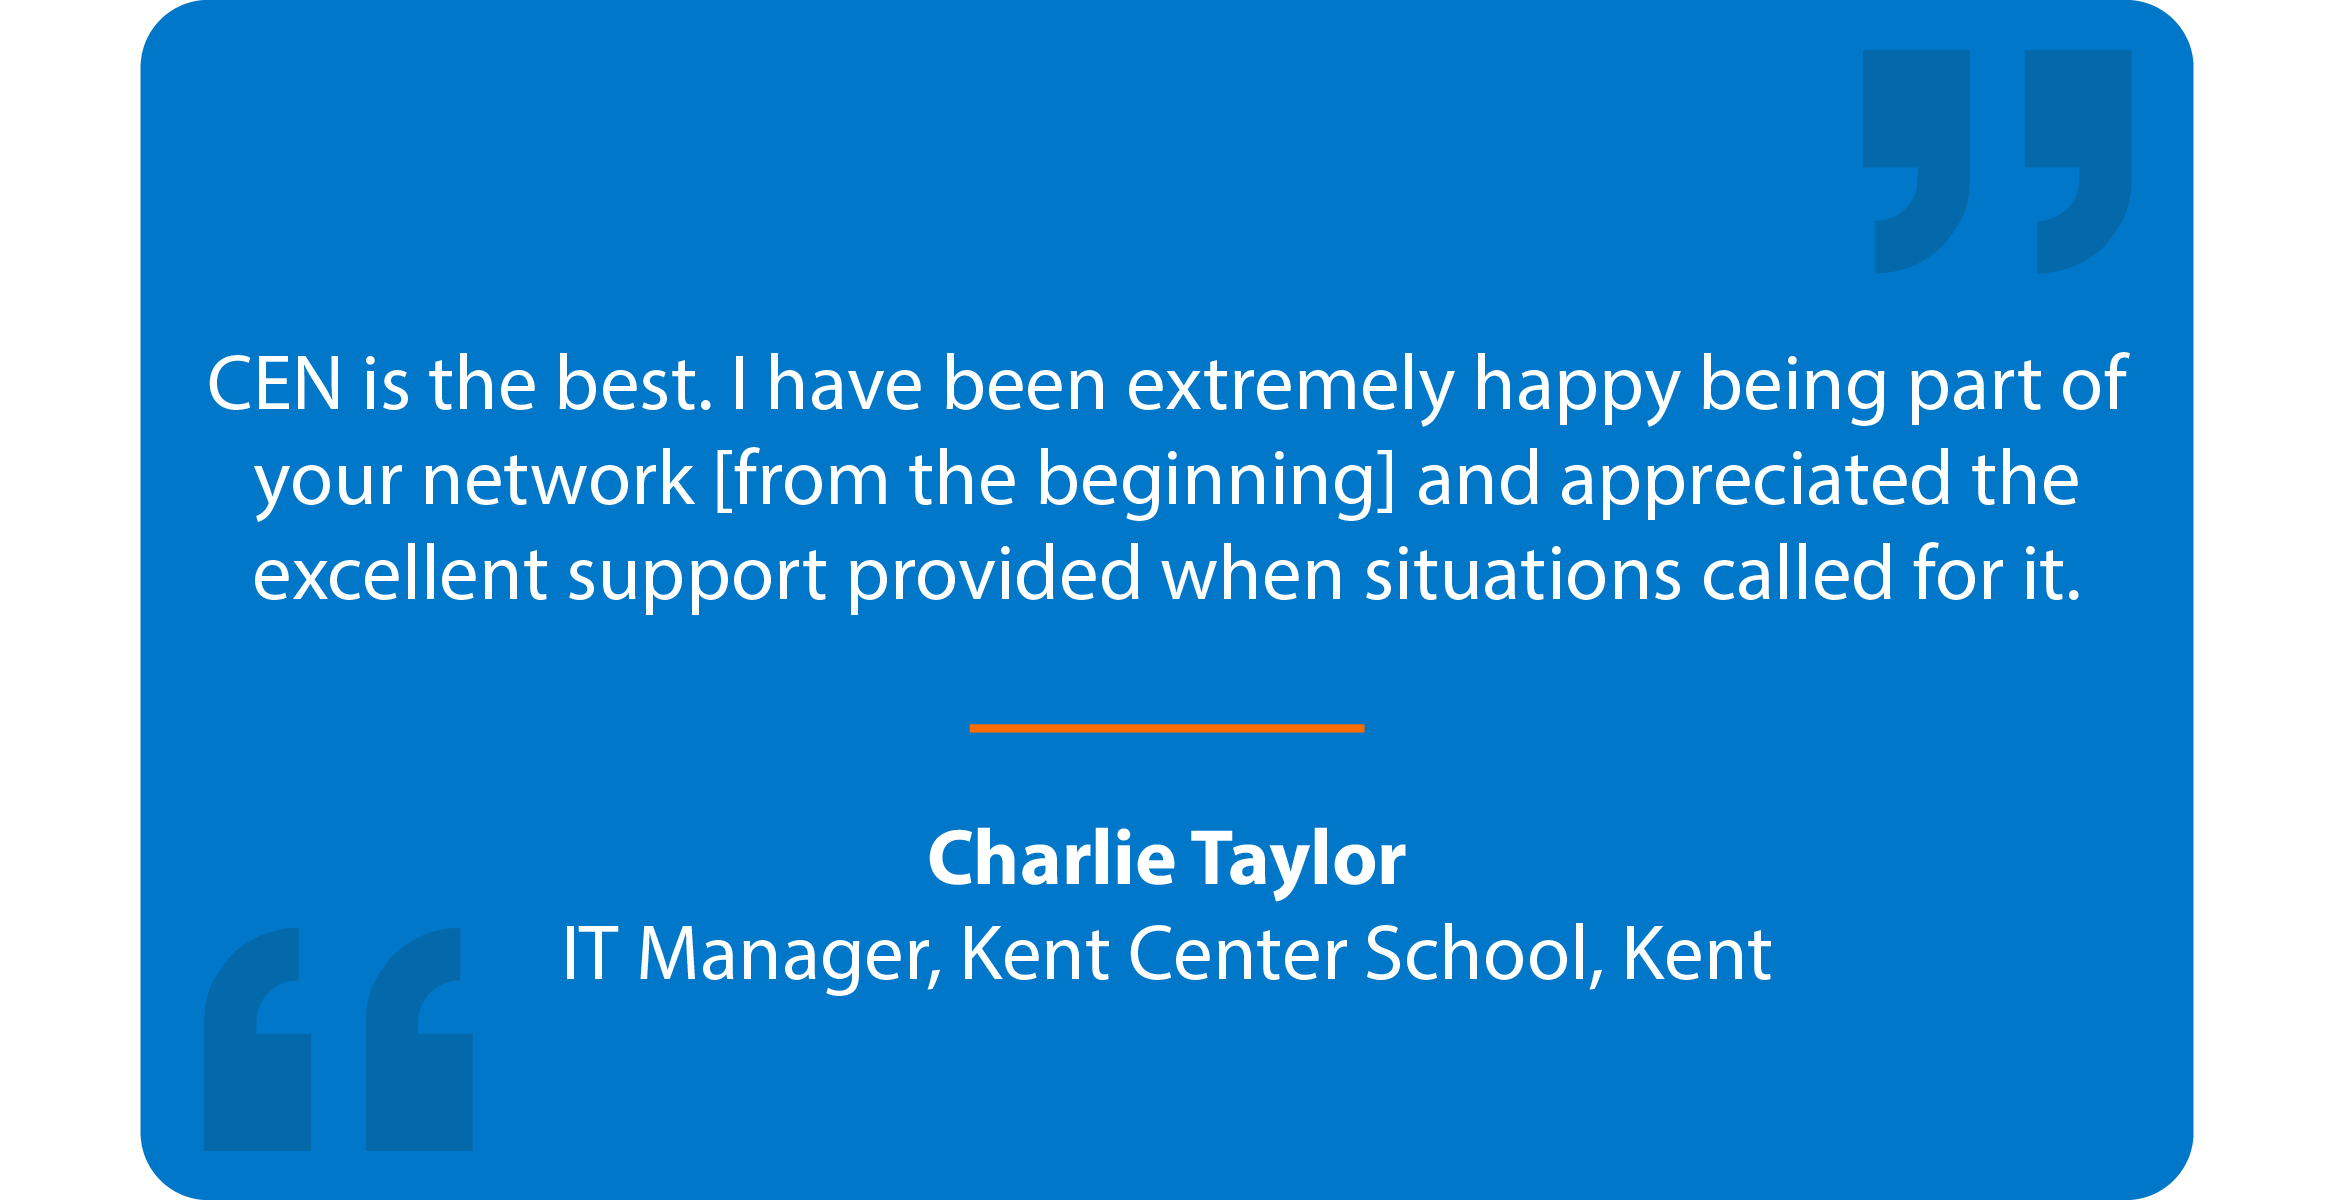 Blue box with quote that reads: CEN is the best. I have been extremely happy being part of your network [from the beginning] and appreciated the excellent support provided when situations called for it. Charlie Taylor IT Manager, Kent Center School, Kent